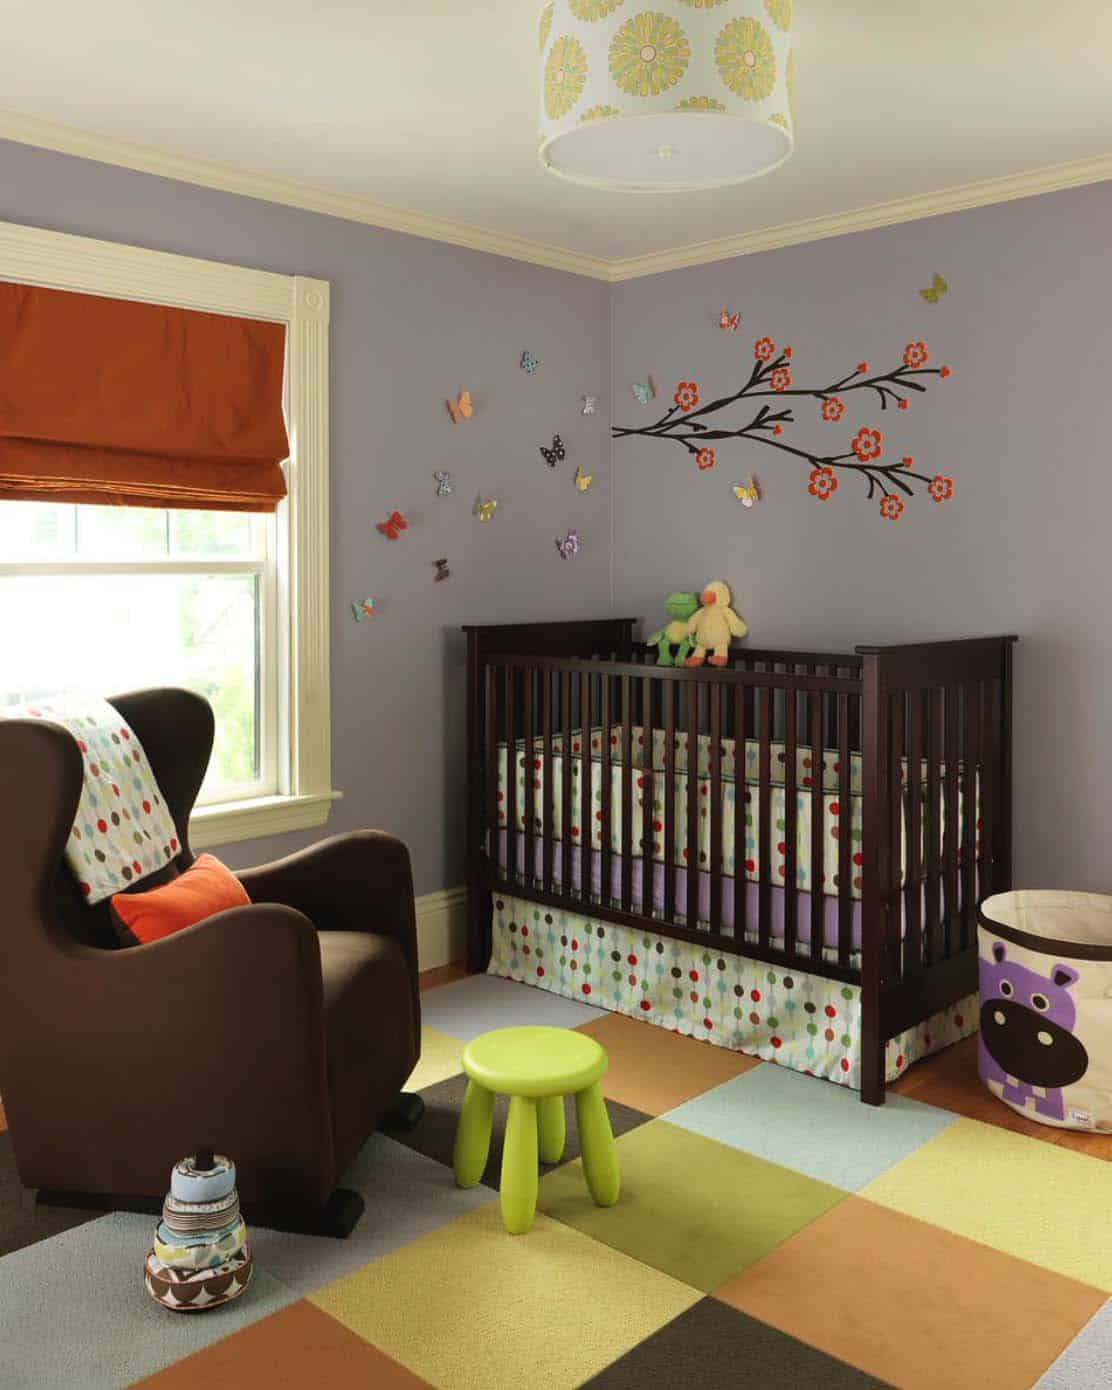 Stylish Nursery Decorating Ideas-34-1 Kindesign